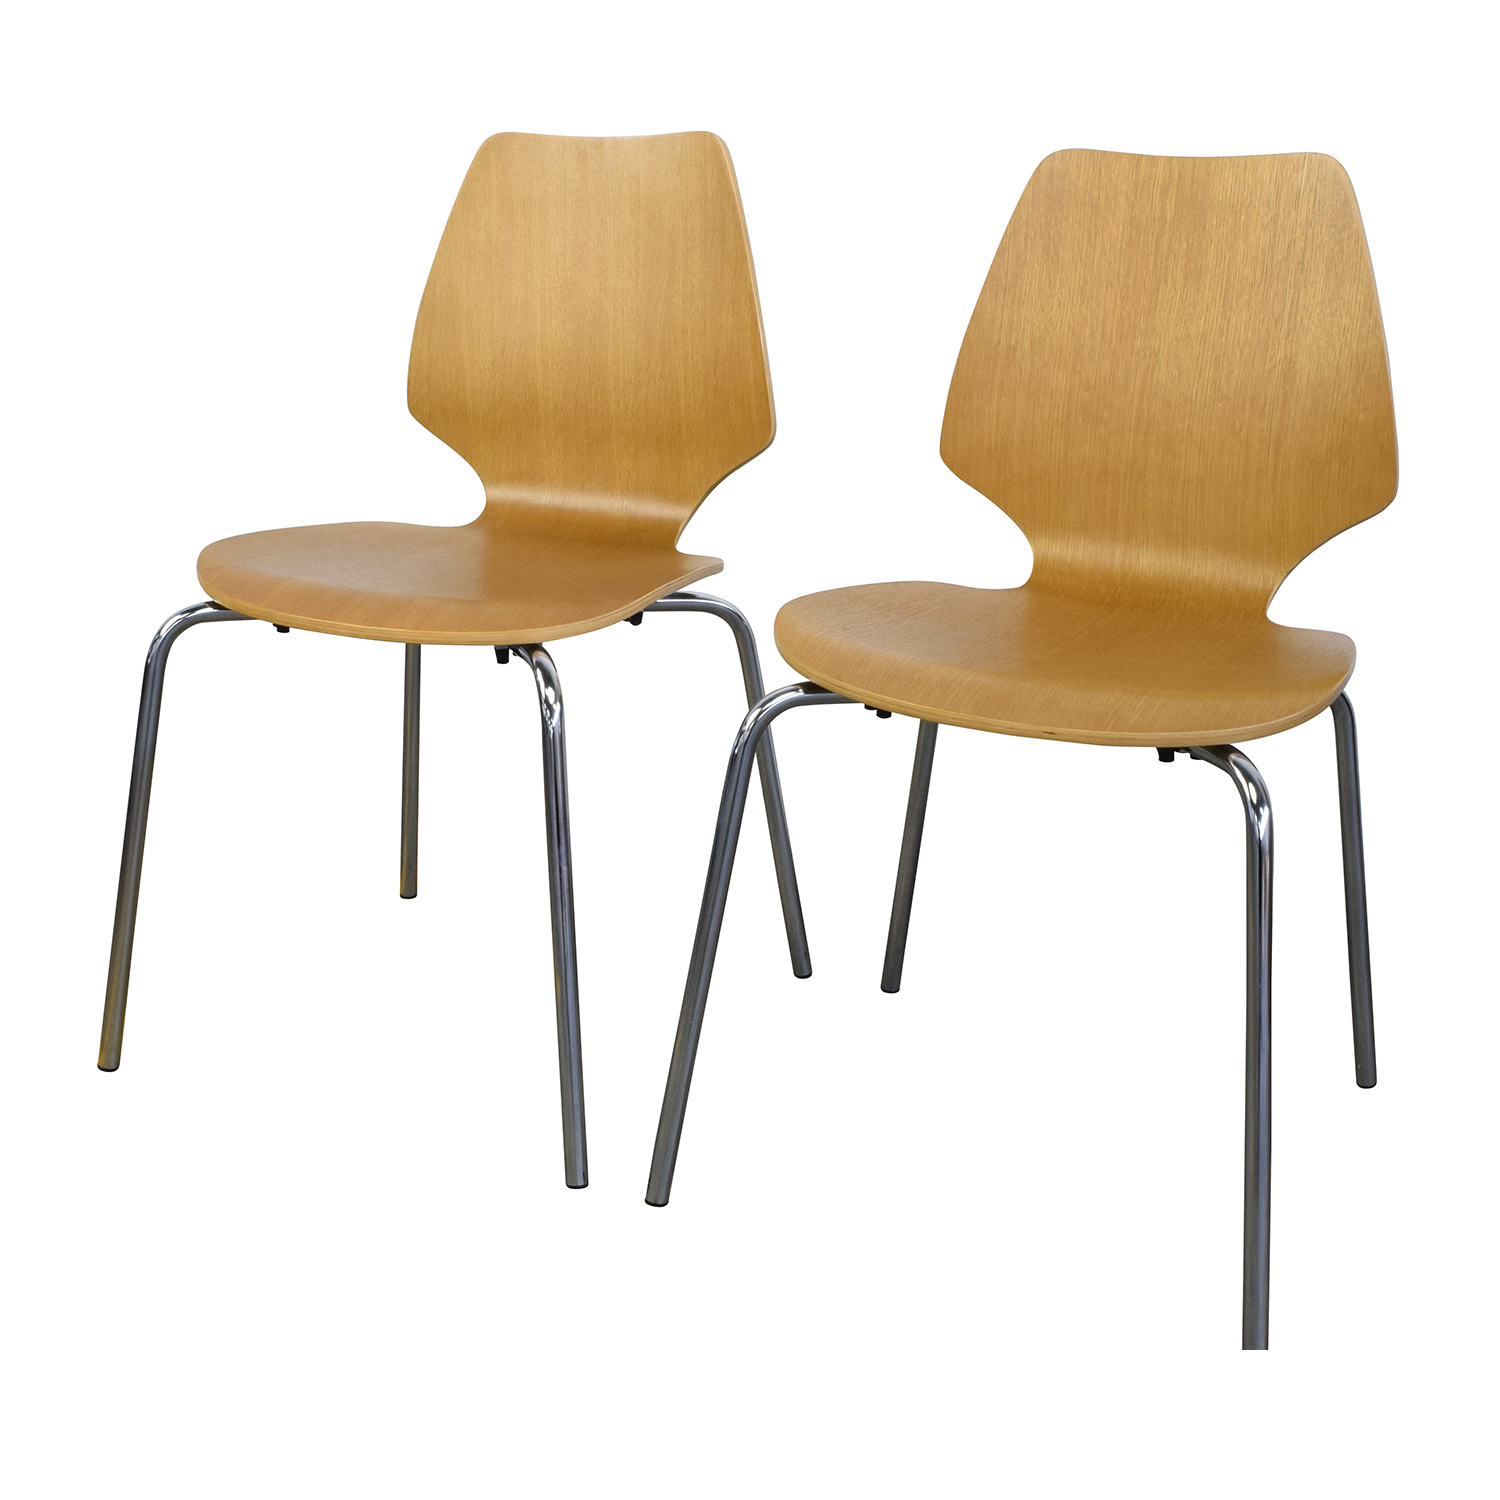 ... West Elm West Elm Scoop Back Natural Wood Chairs Dining Chairs ...